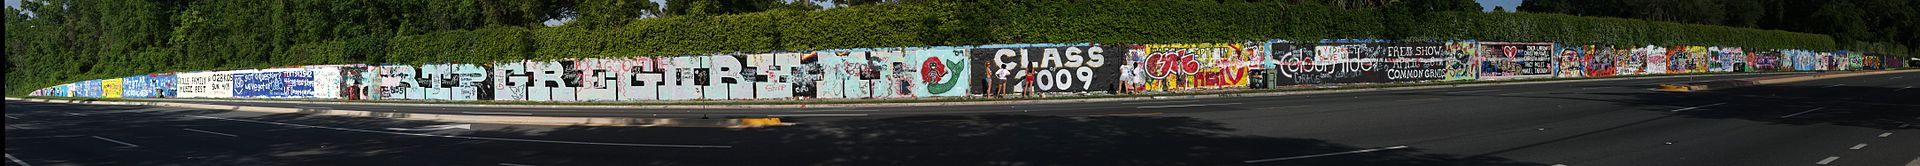 The SW 34th Street Wall in Gainesville, FL has been sporting student graffiti since 1979.